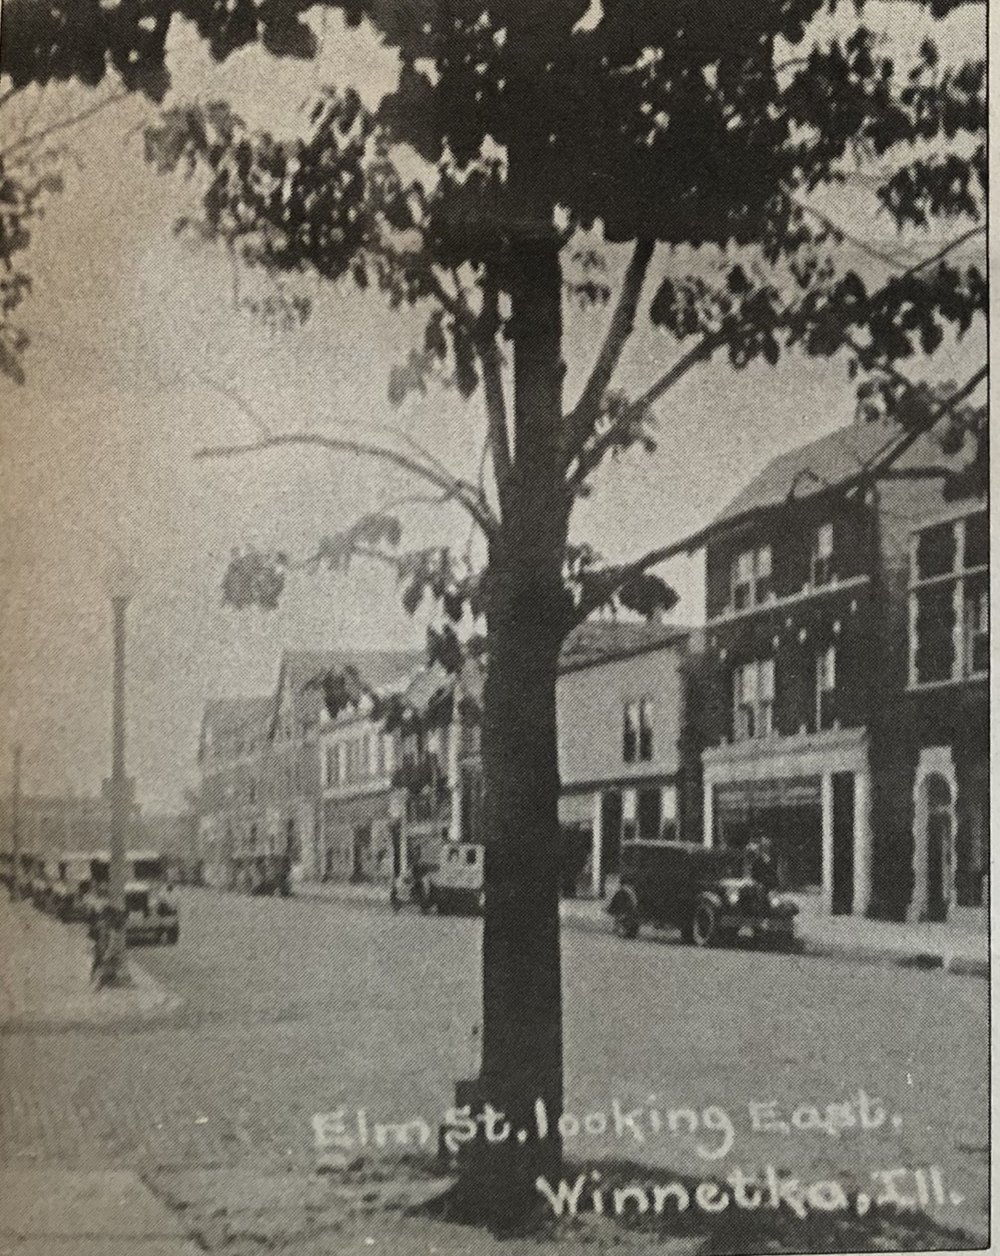 Elm Street Looking East circa 1930